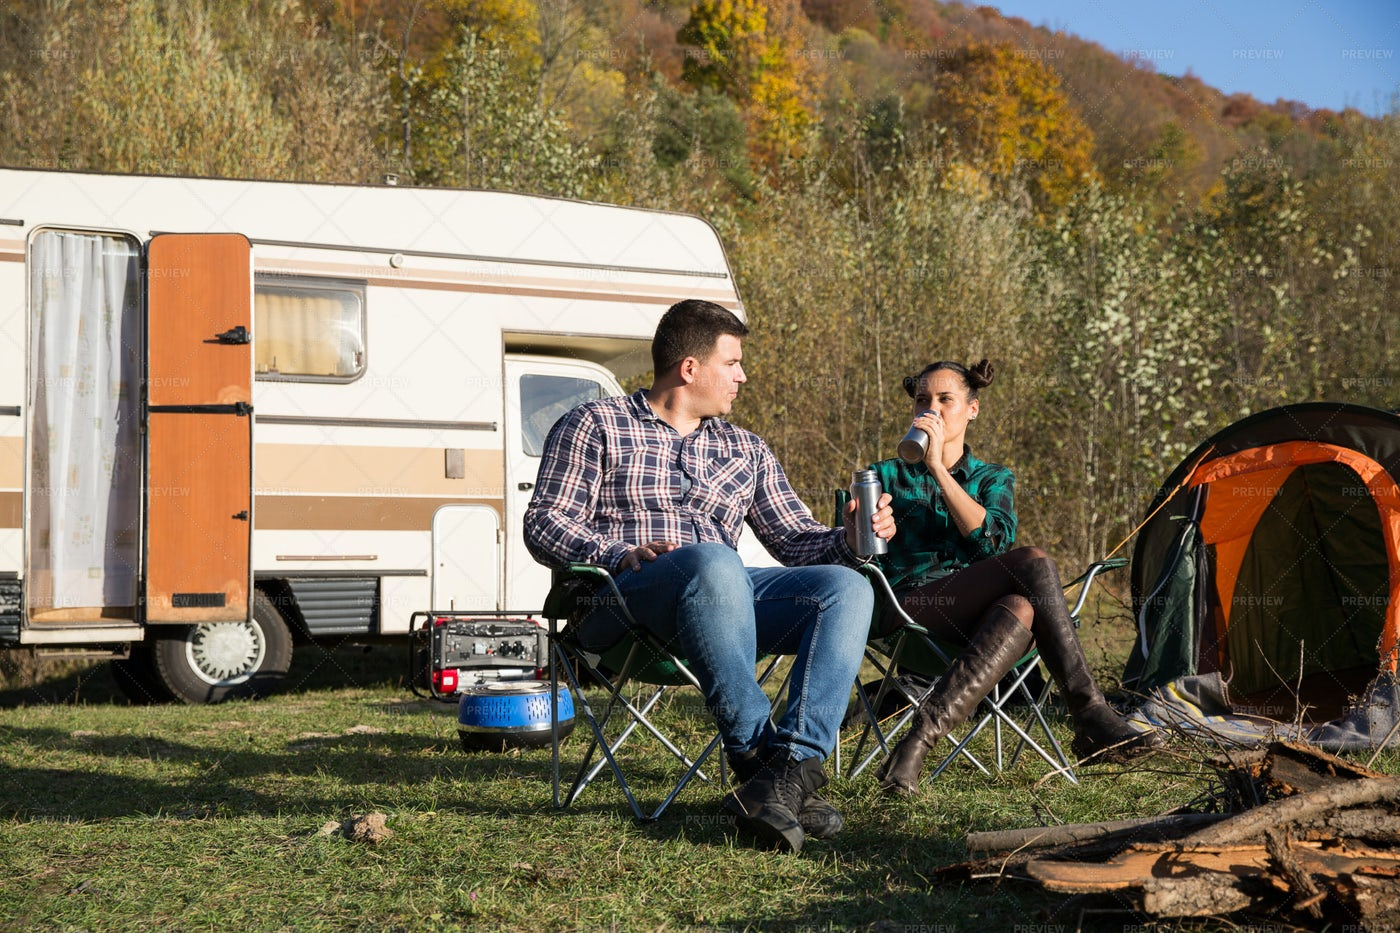 Drinking Coffee While Camping: Stock Photos